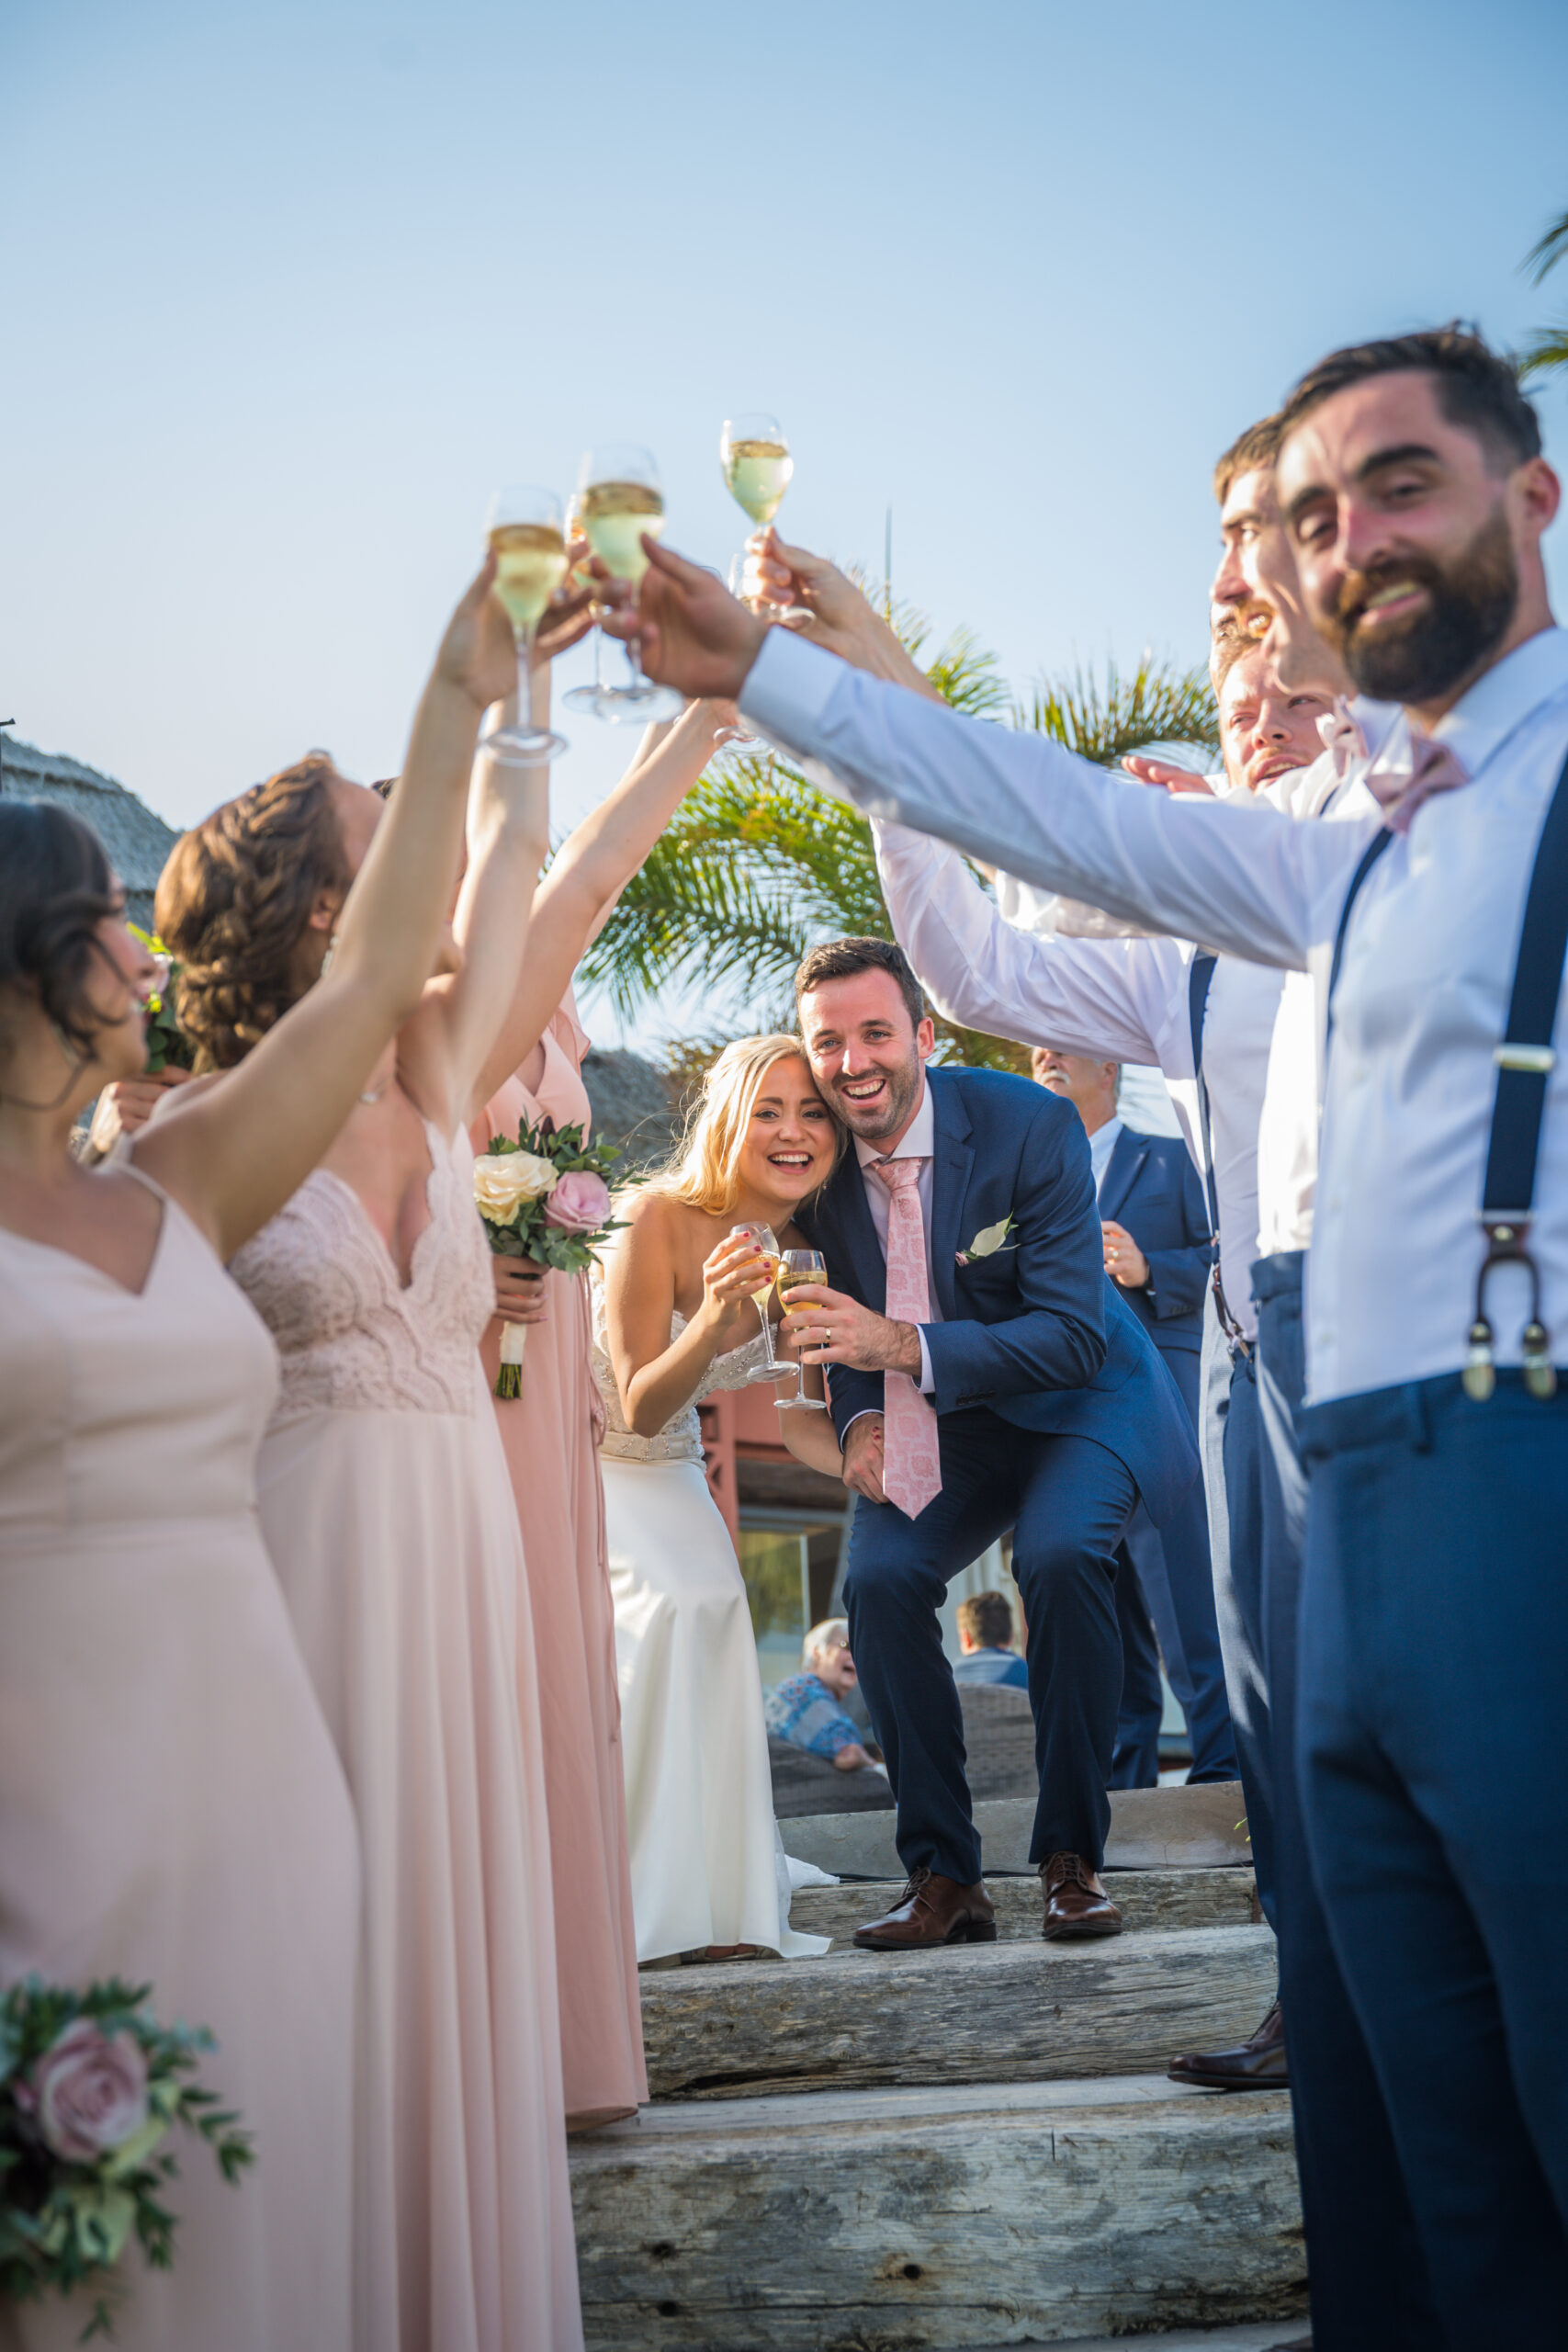 The bride and groom are toasted by family and friends - Rebecca Davidson Photography